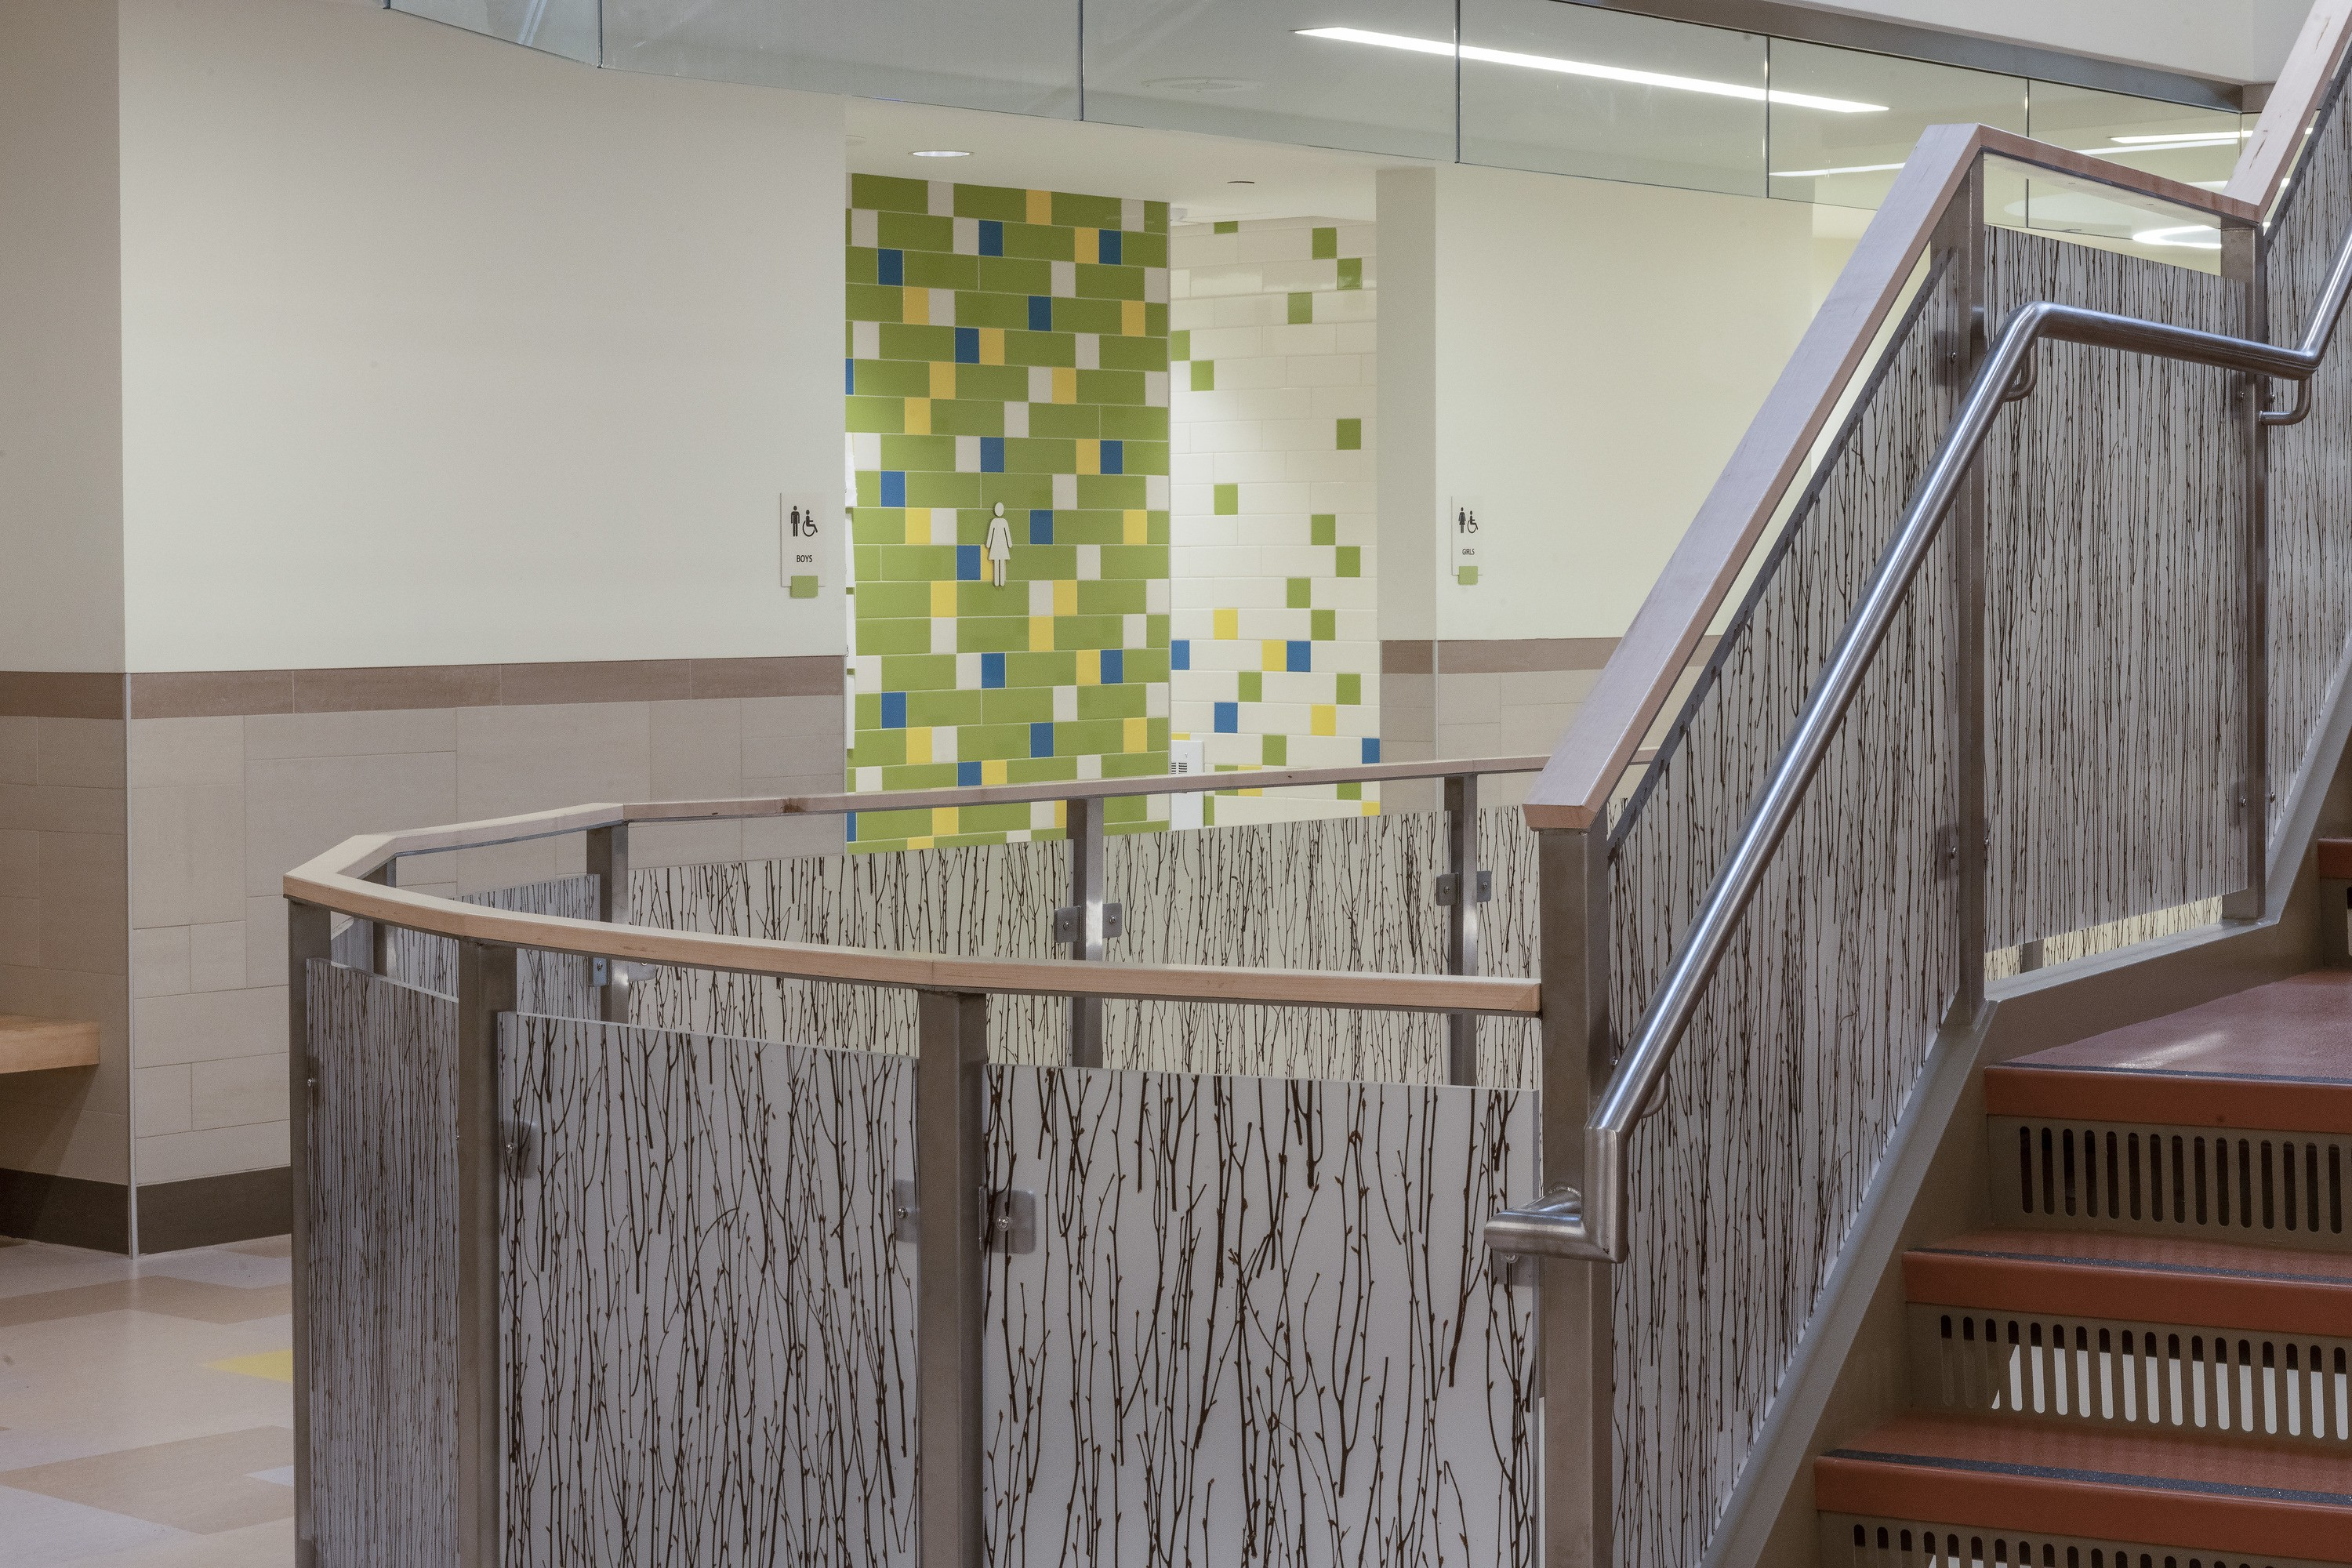 Templeton Elementary School Interior Circulation